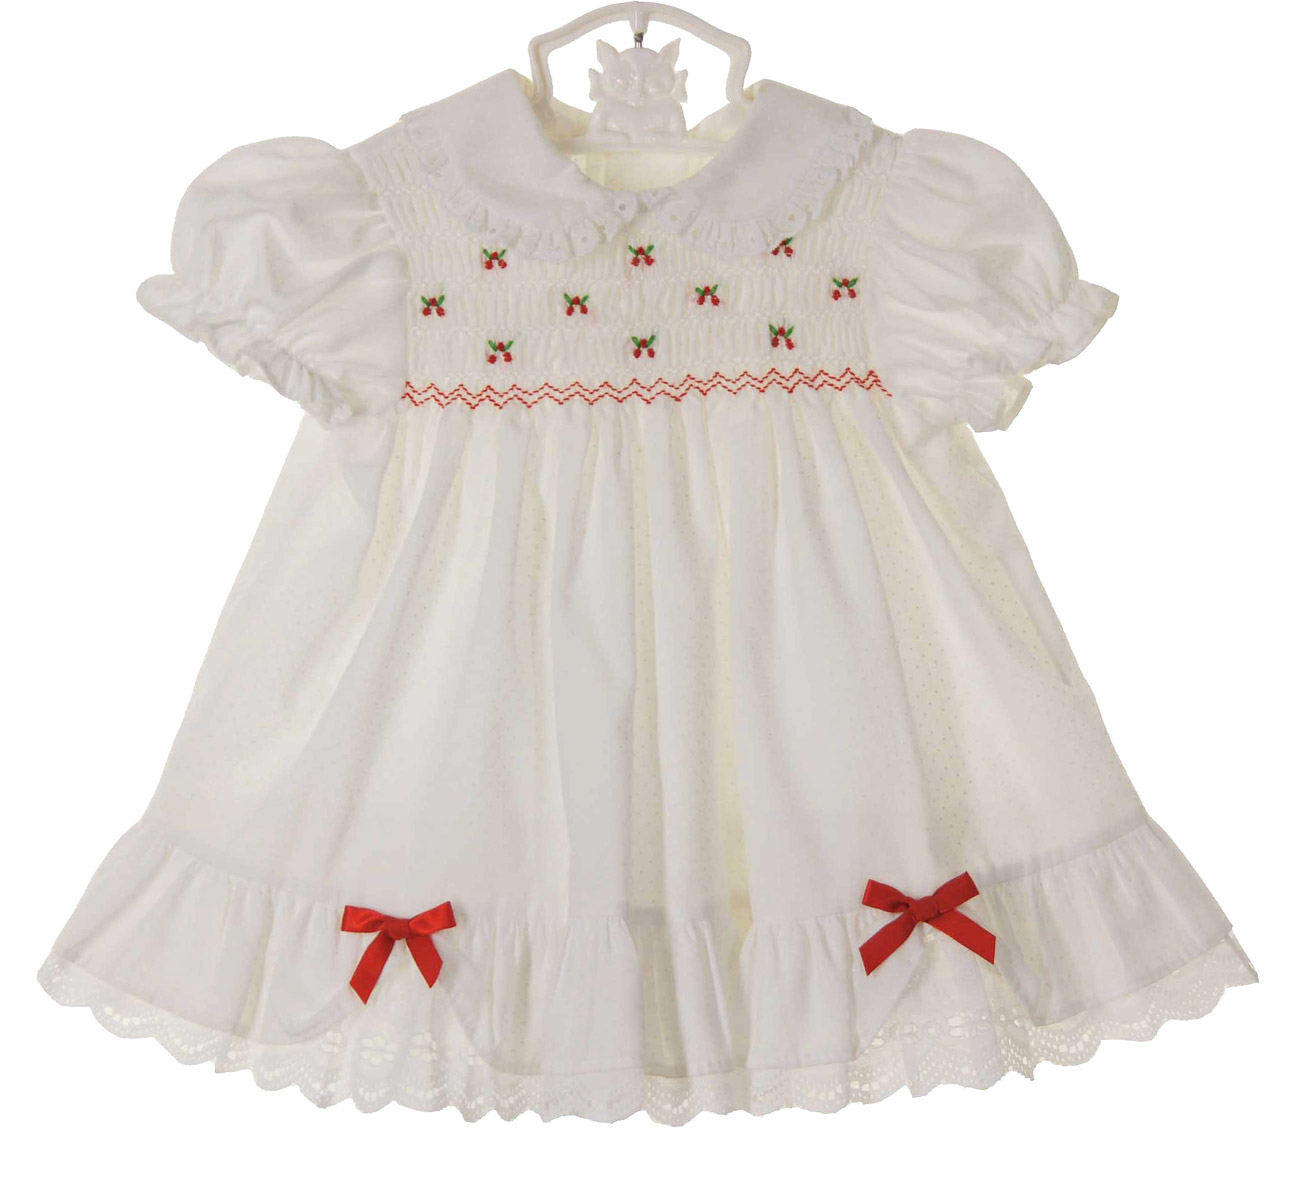 Polly Flinders White Dotted Smocked Dress With Embroidered Red